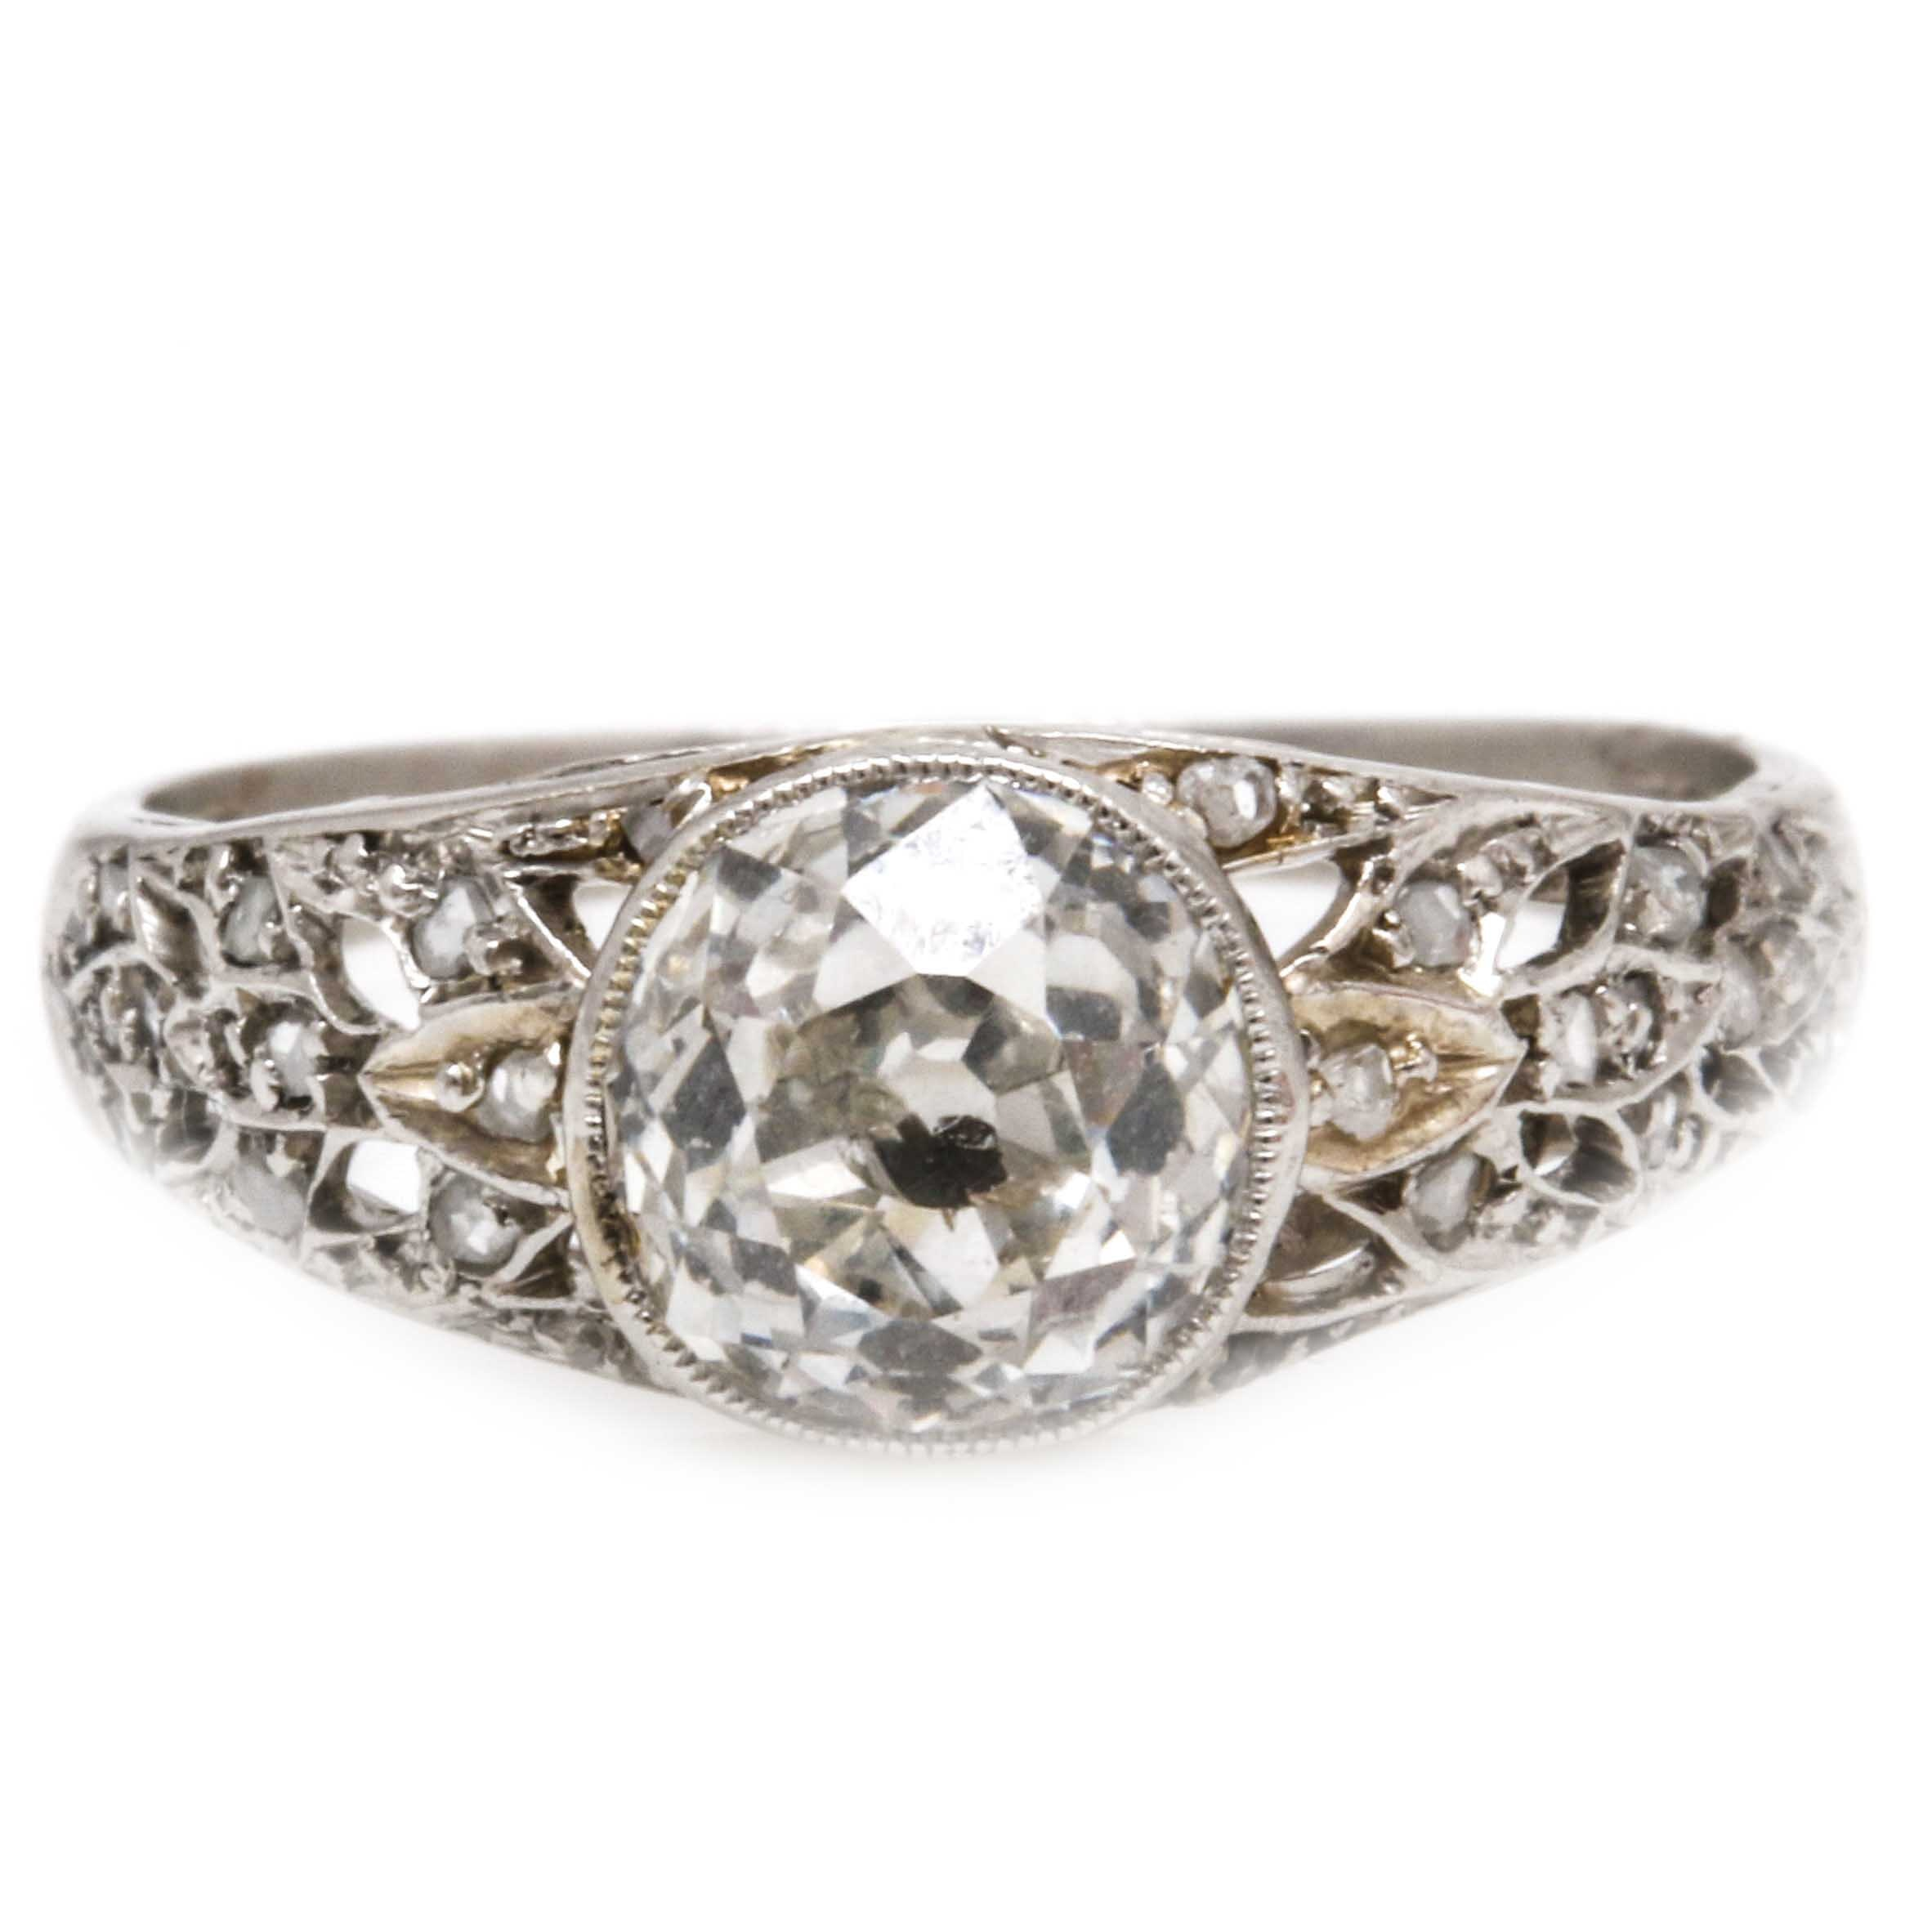 Platinum 1.21 CTW Diamond Ring